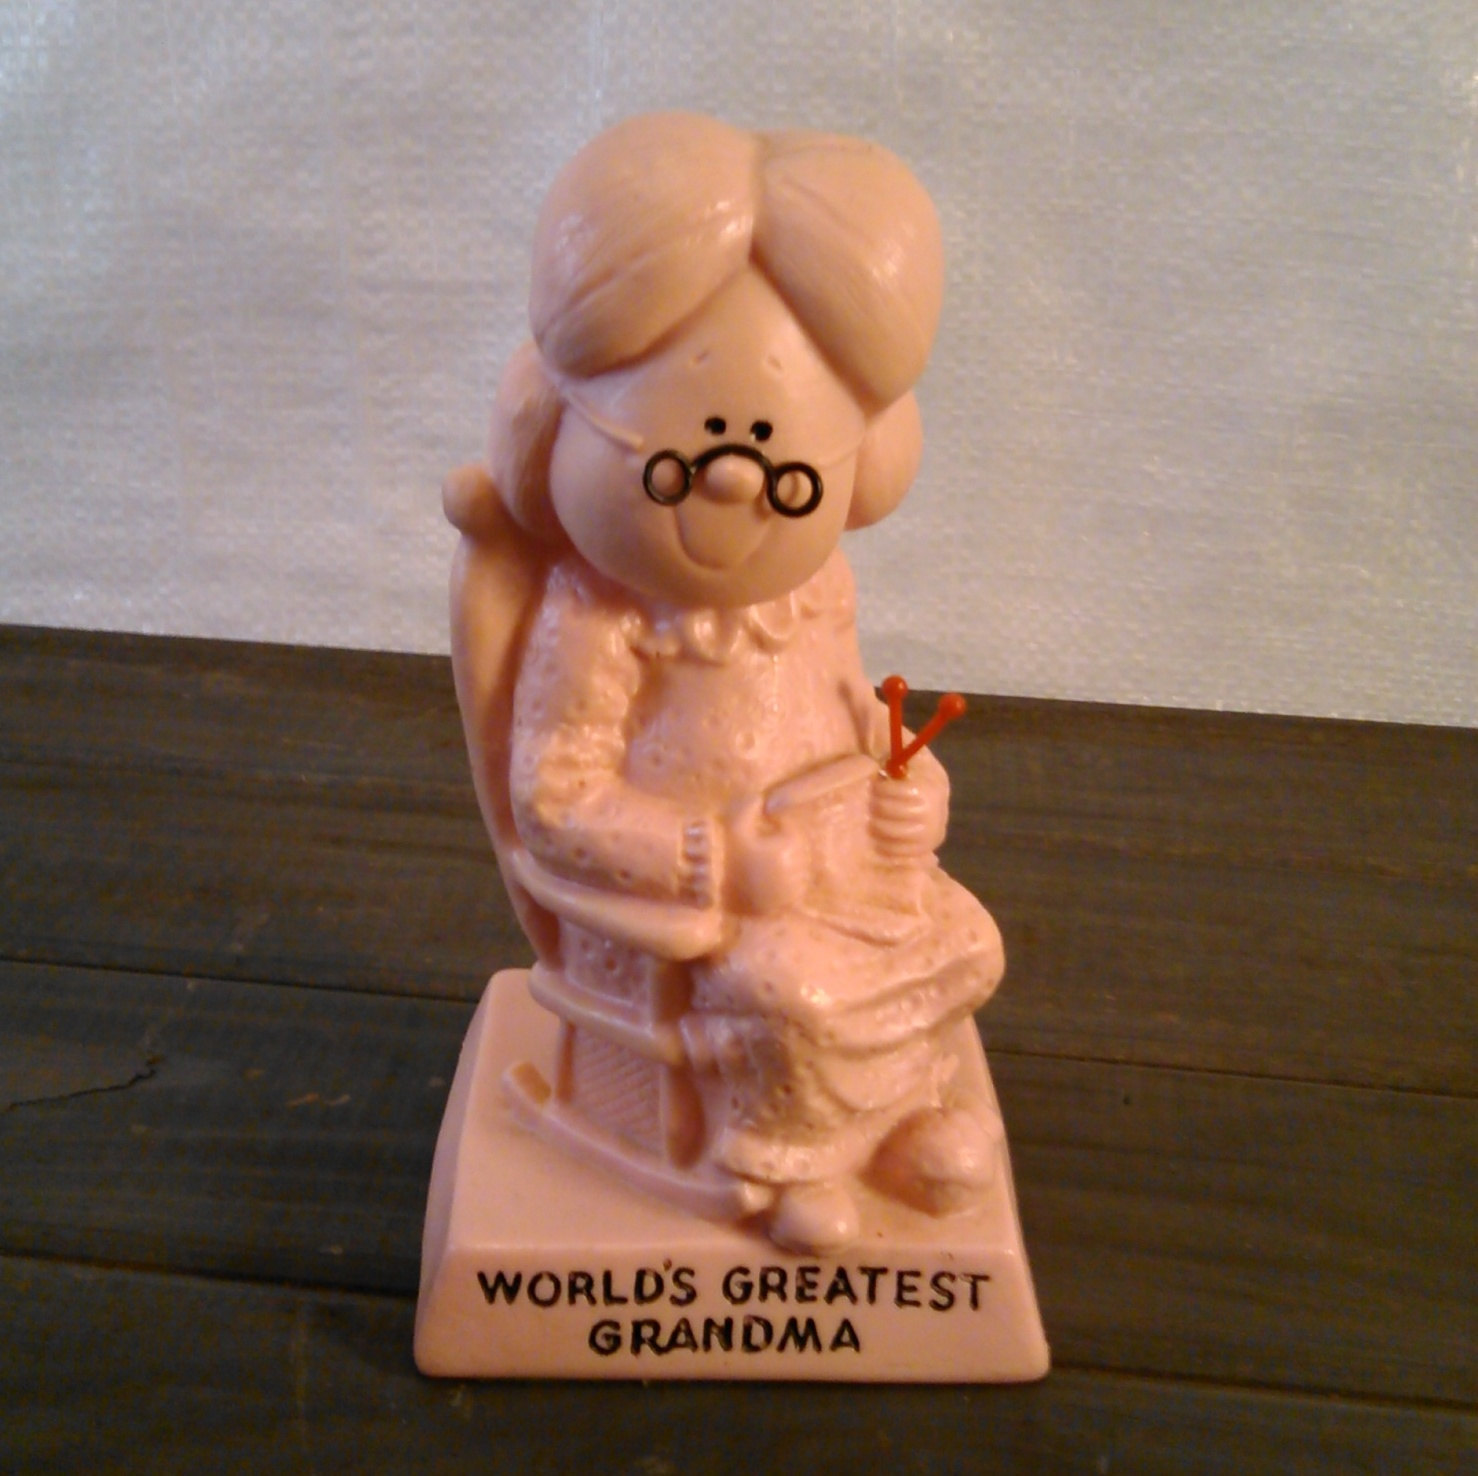 World's Greatest Grandma and Grandpa W & R Berries Co's 1970 Pink and Blue